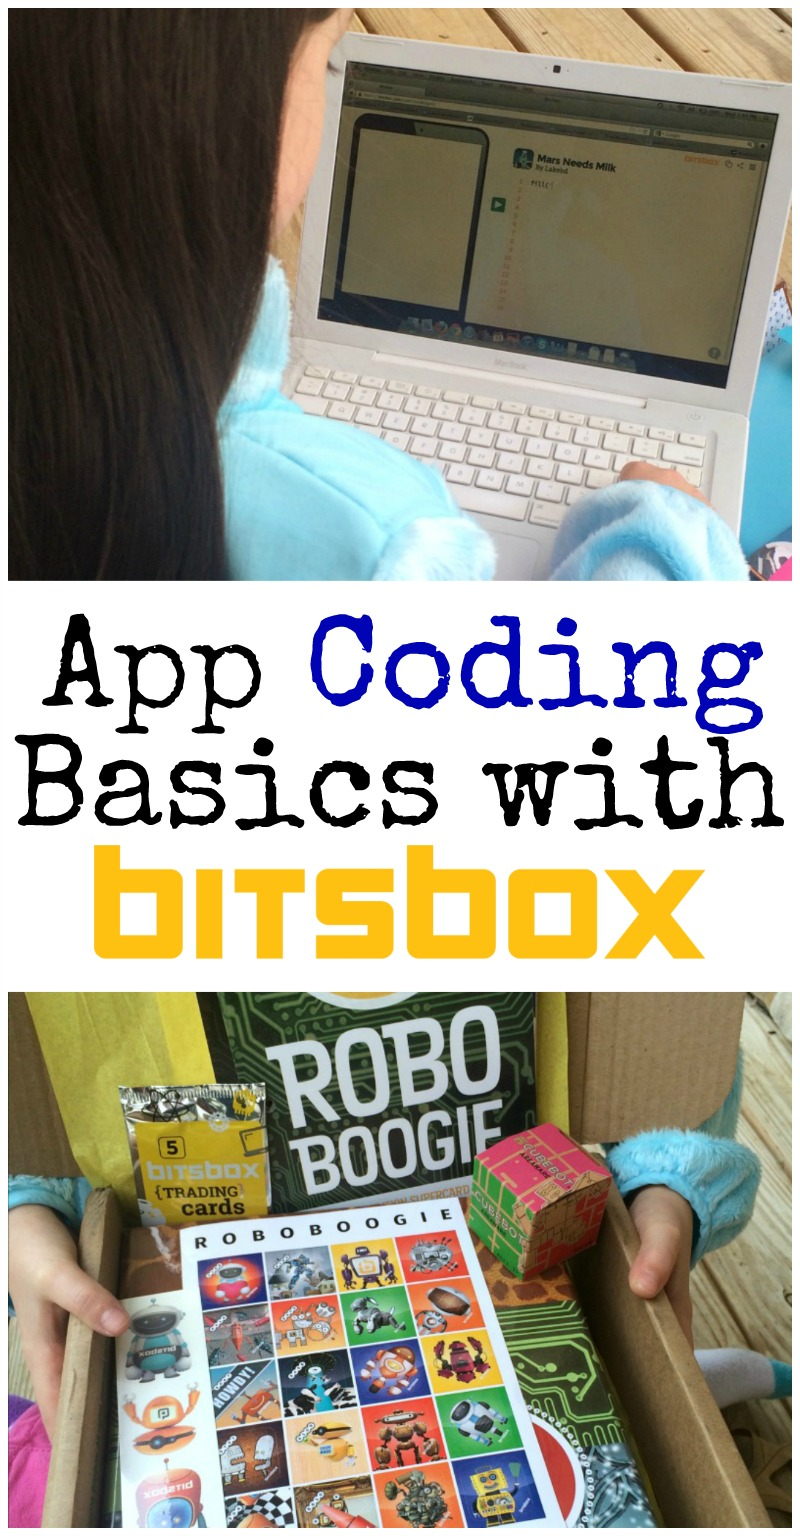 This simple, monthly coding program for kids is such a fun way to teach prgramming! They will learn to code real apps that you can play on your tablet or phone. If you're looking for an engaging way to teach prgramming basics, definitely try Bitsbox.